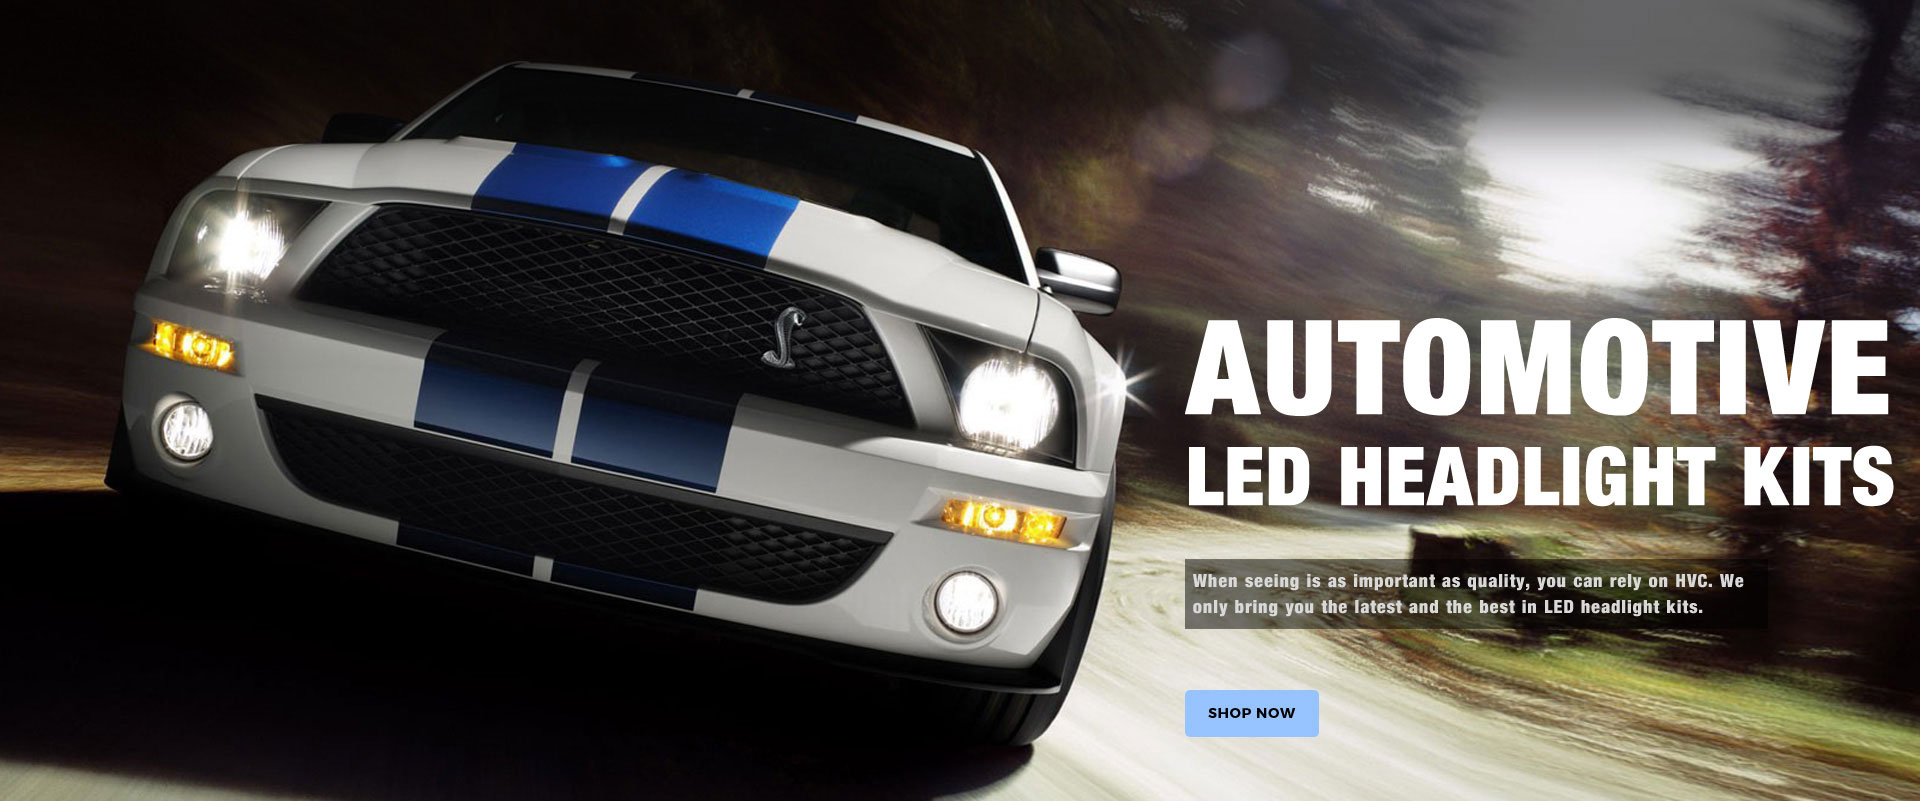 Canada's Best Automotive LED kits & HID kits - HID VISION CANADA